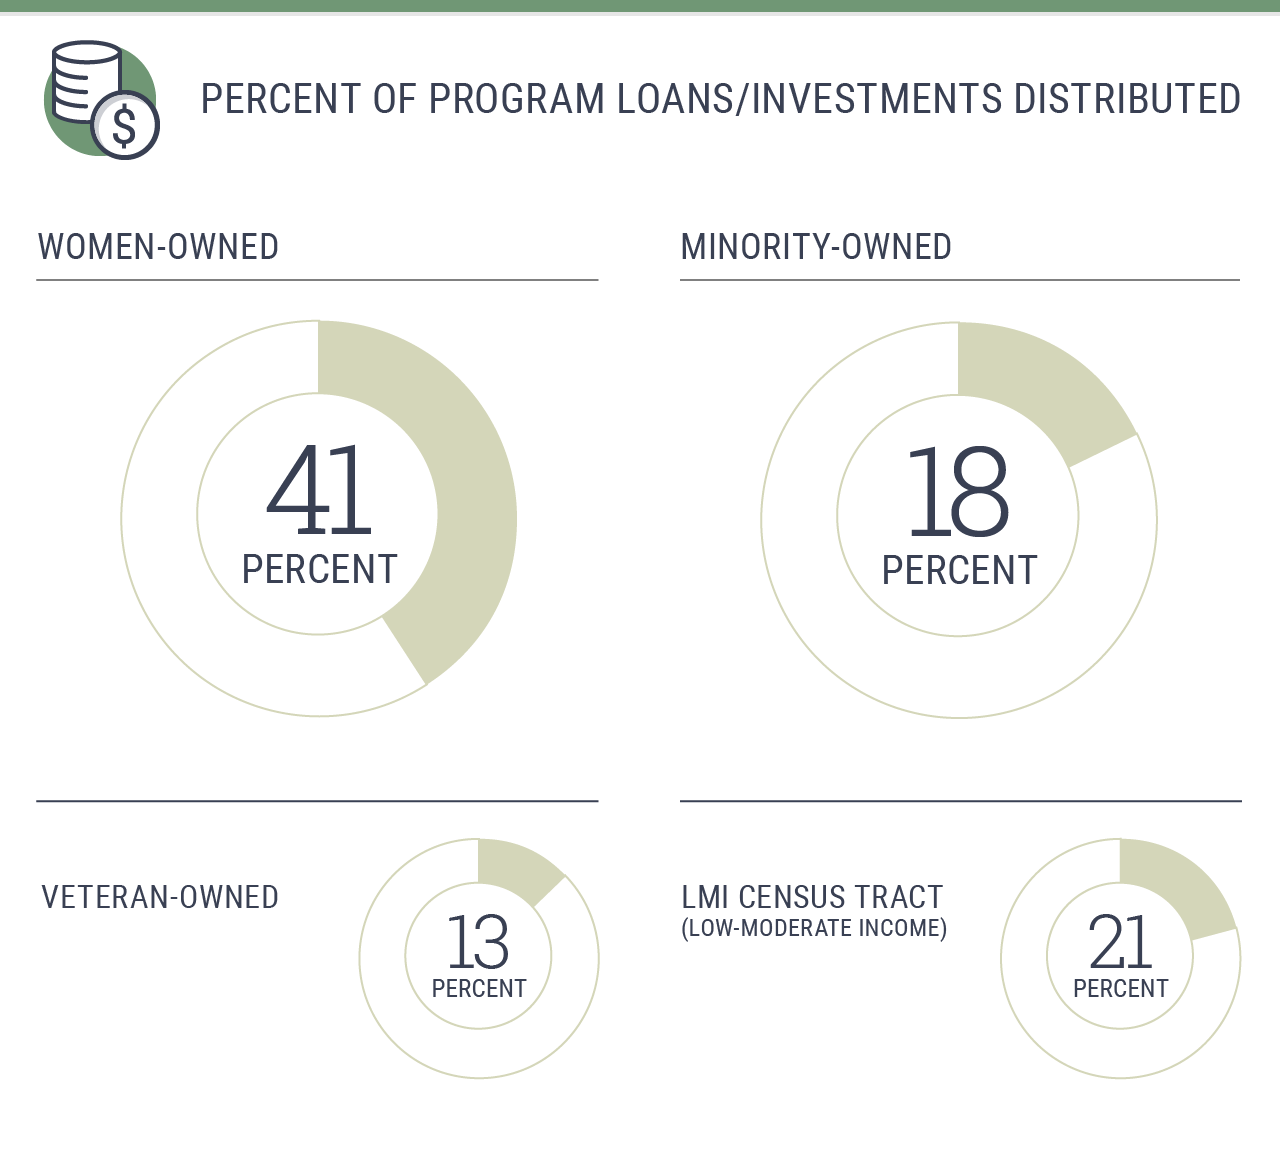 Percent of program loans/investments distributed: 41% women-owned; 18% minority-owned; 13% veteran-owned; 21% low-moderate income (LMI) census tract